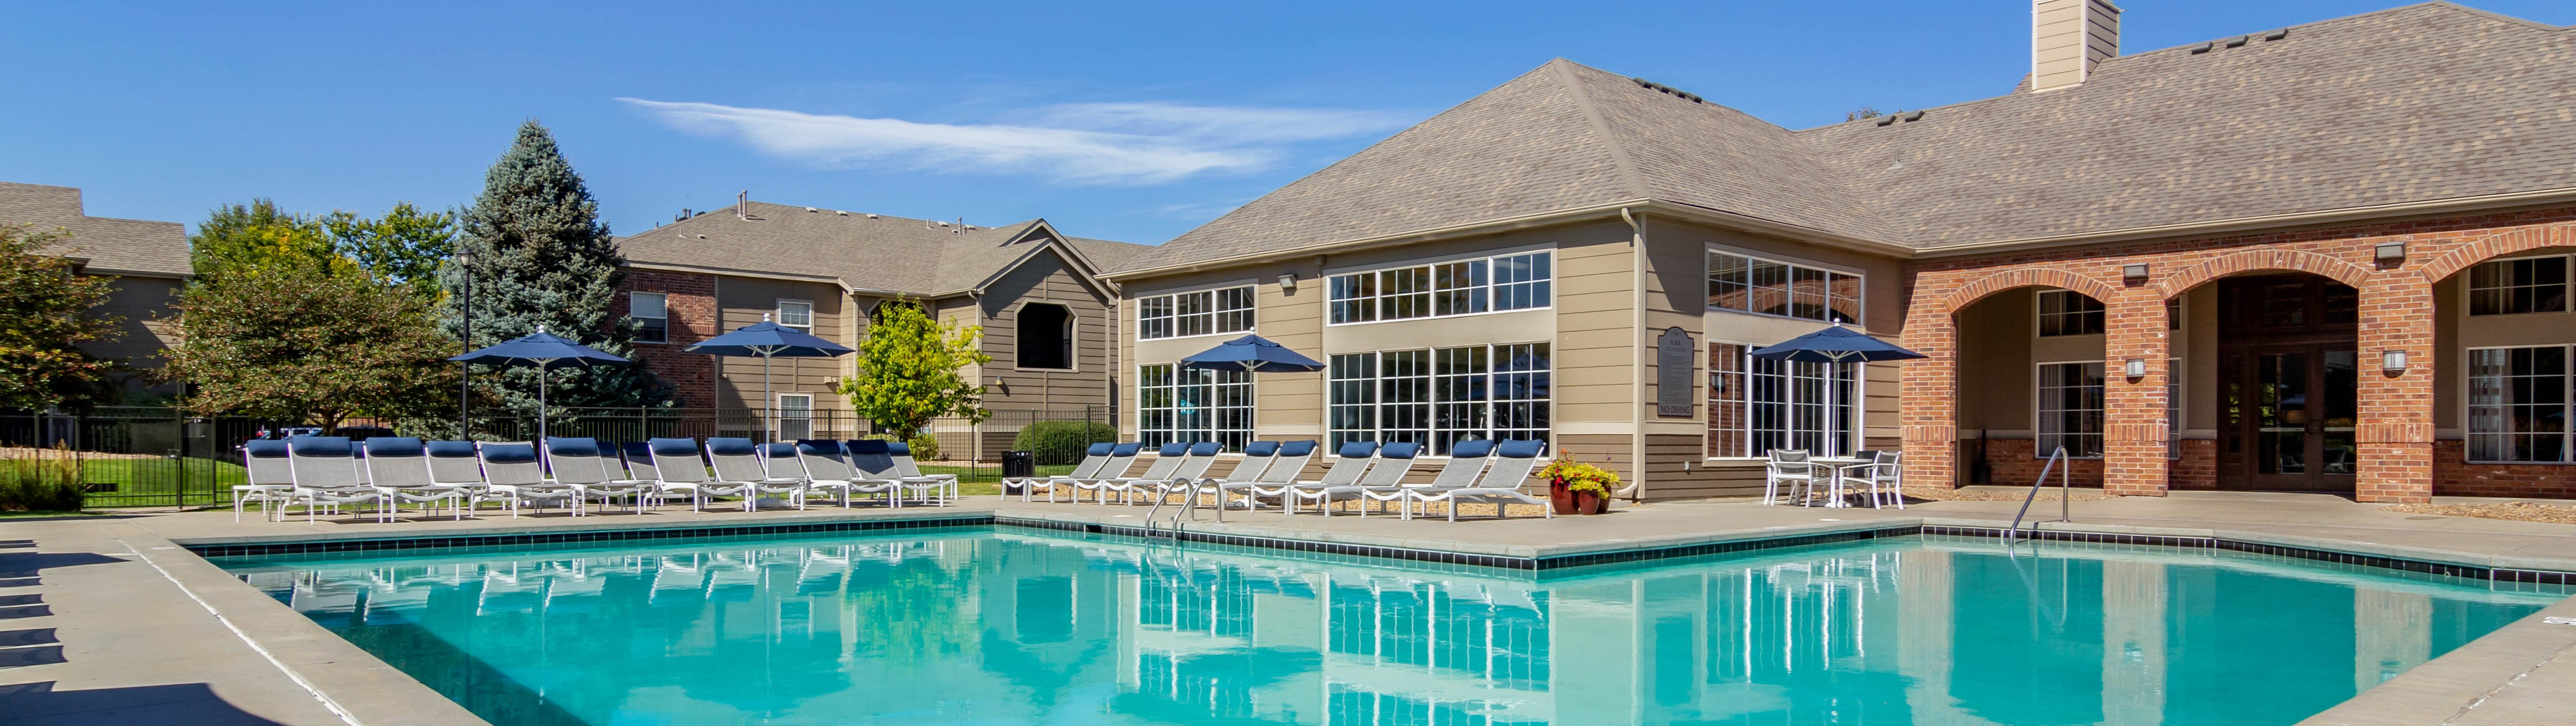 Legacy Heights Apartments | Swimming Pool and Clubhouse